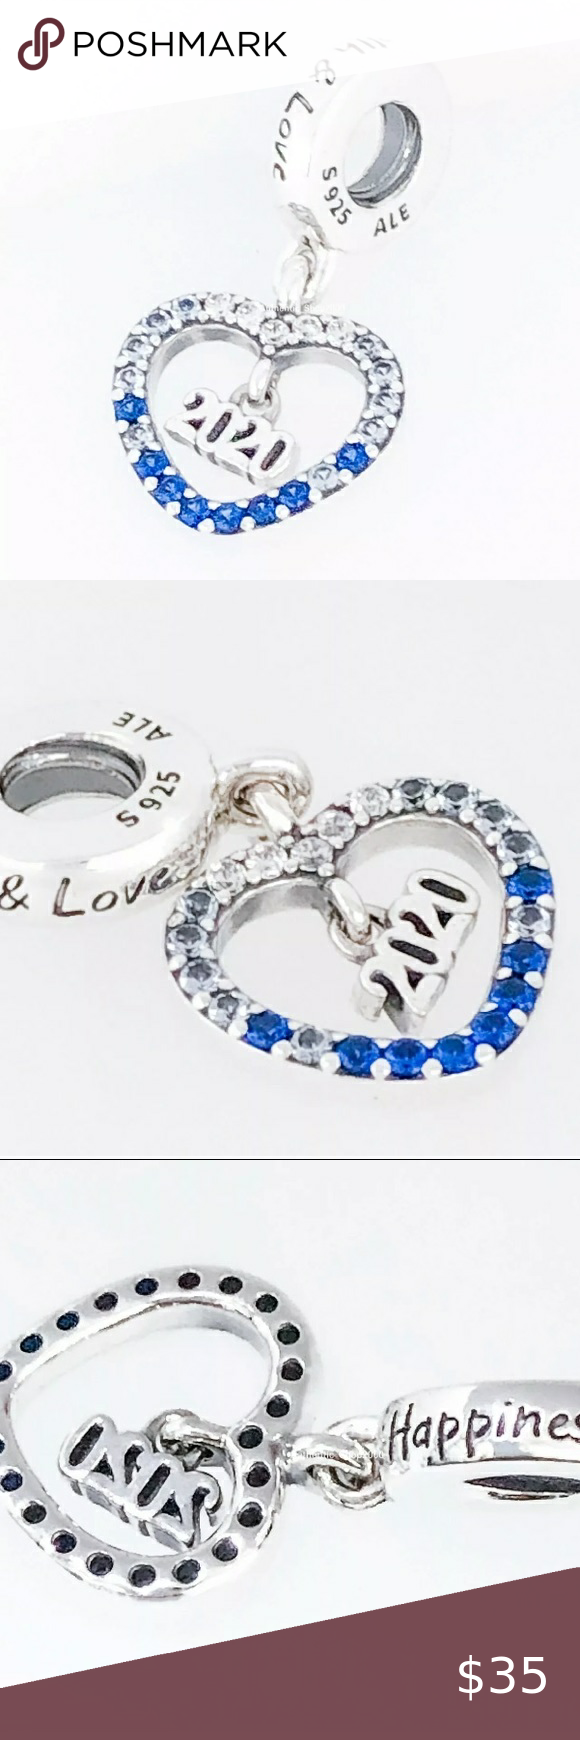 Pandora Jewelry 60% OFF!> Pandora 2020 New Year Charm Preowned but never worn or used Pandora 2020 dangle charm Blue and clear czs. Pandora flat gift box included Pandora Jewelry Bracelets #Jewelry #PANDORA #style #Accessories #shopping #styles #outfit #pretty #girl #girls #beauty #beautiful #me #cute #stylish #design #fashion #outfits #PANDORAbracelets #PANDORAcharm